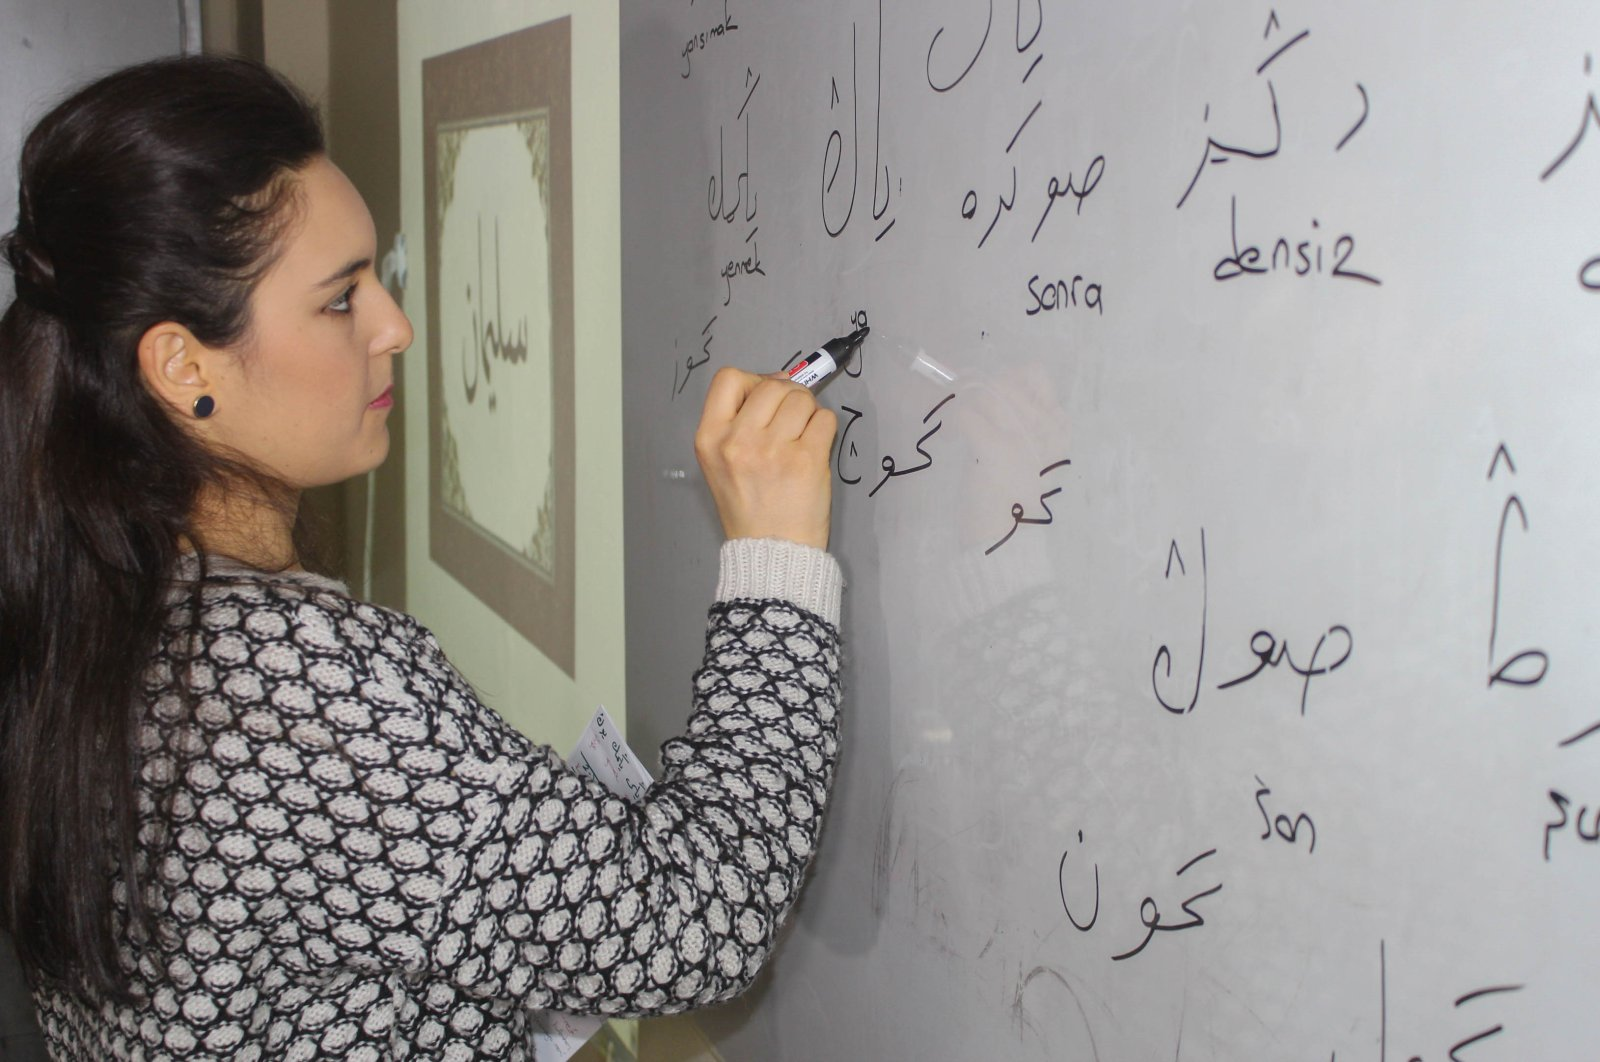 Turkish classes are popular among foreigners, as the language finds newfound popularity thanks to its widely available TV series and the country's rise in the international community. (Shutterstock Photo)